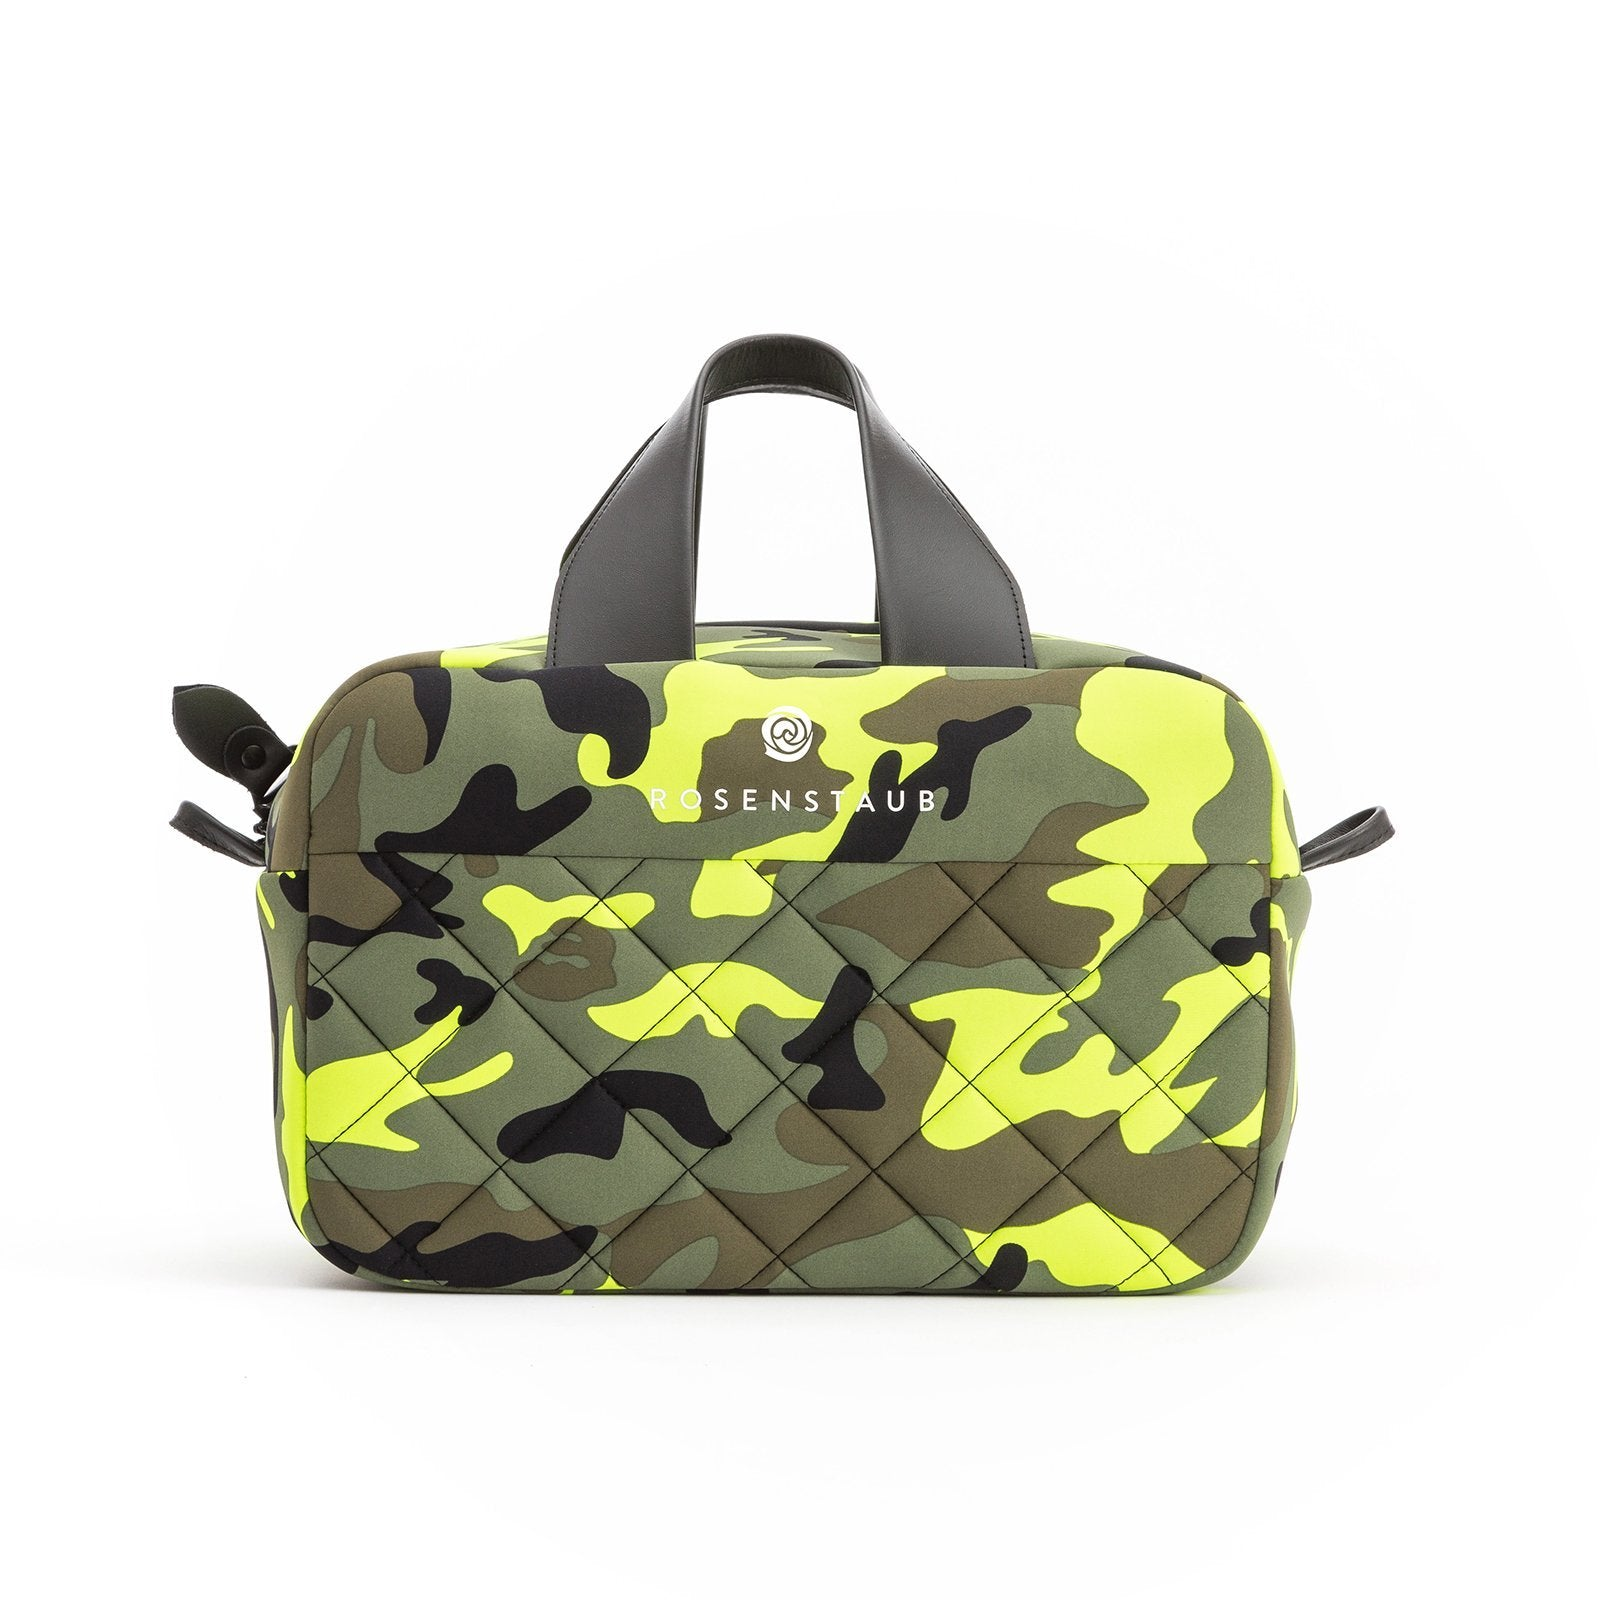 Bag 34 in Neon Camouflage by Rosenstaub